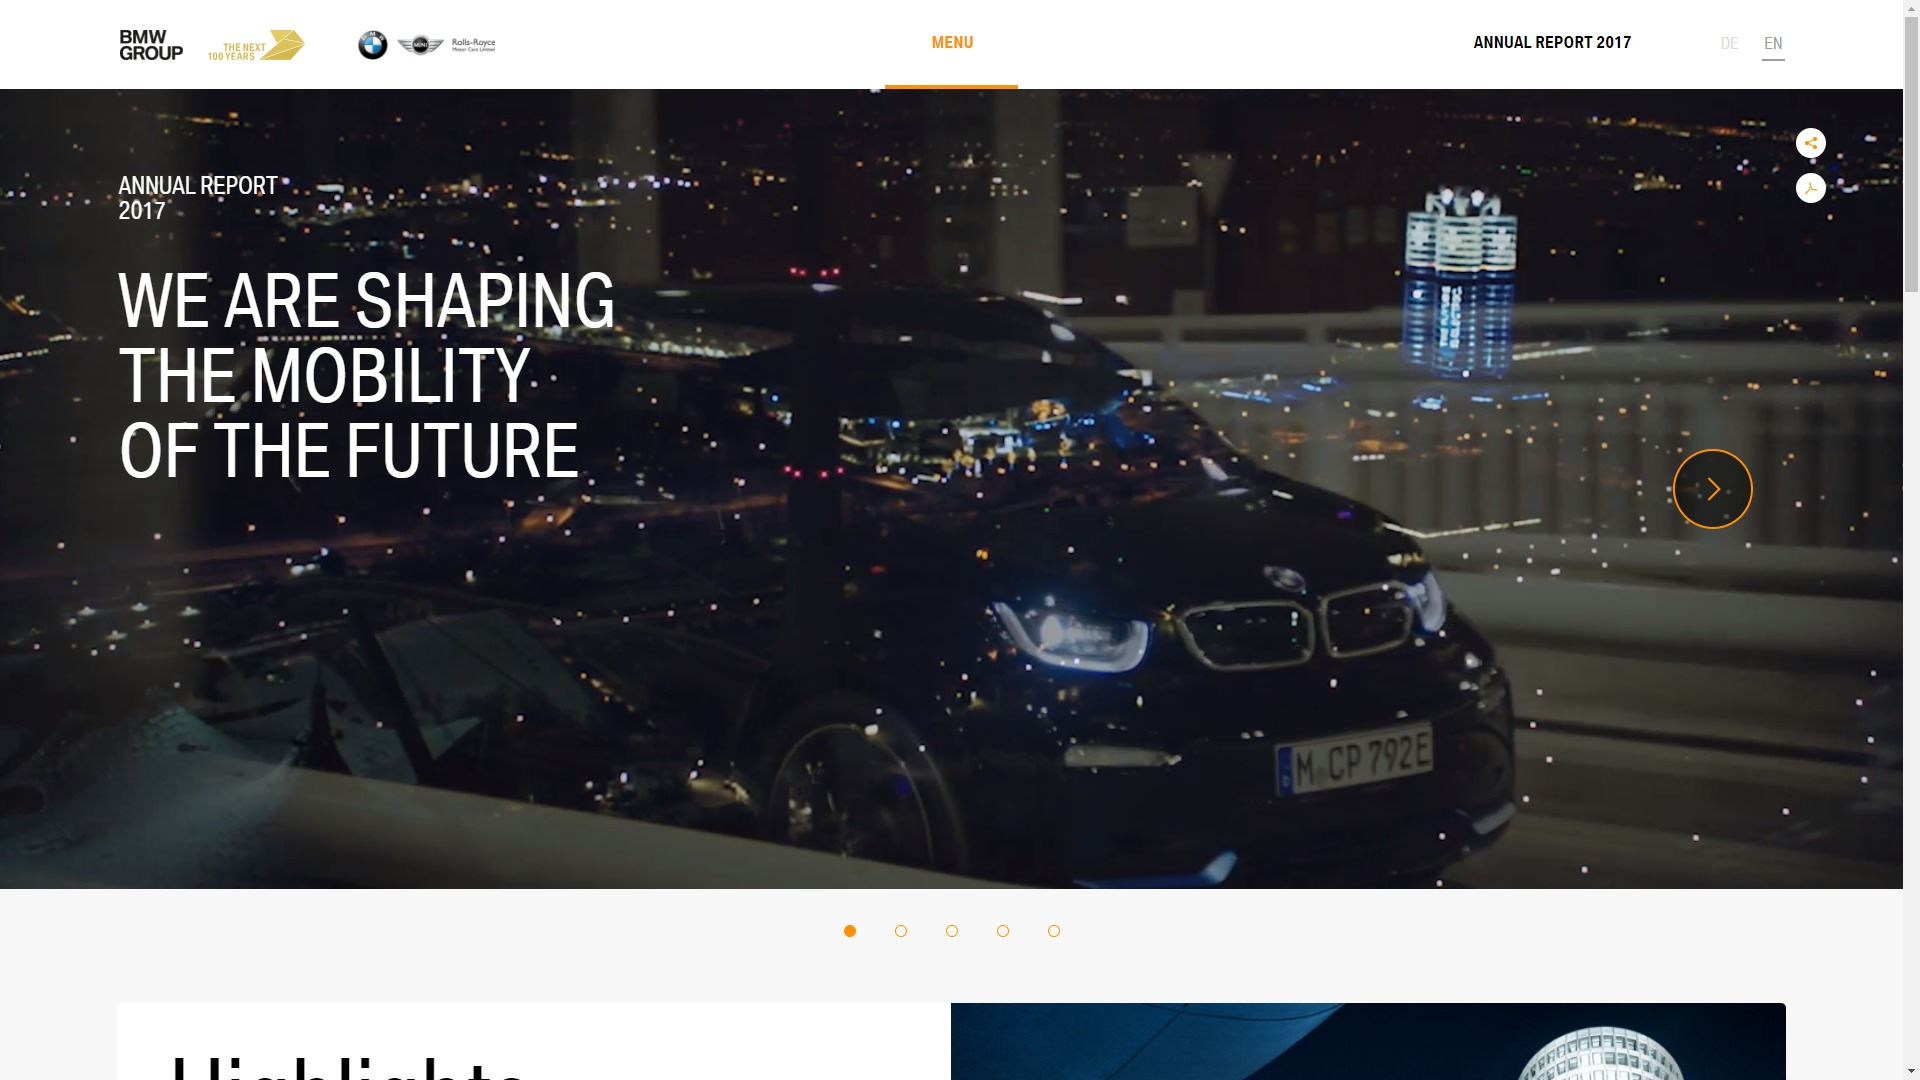 Lacp 2017 Vision Awards Annual Report Competition Bmw Group Eqs